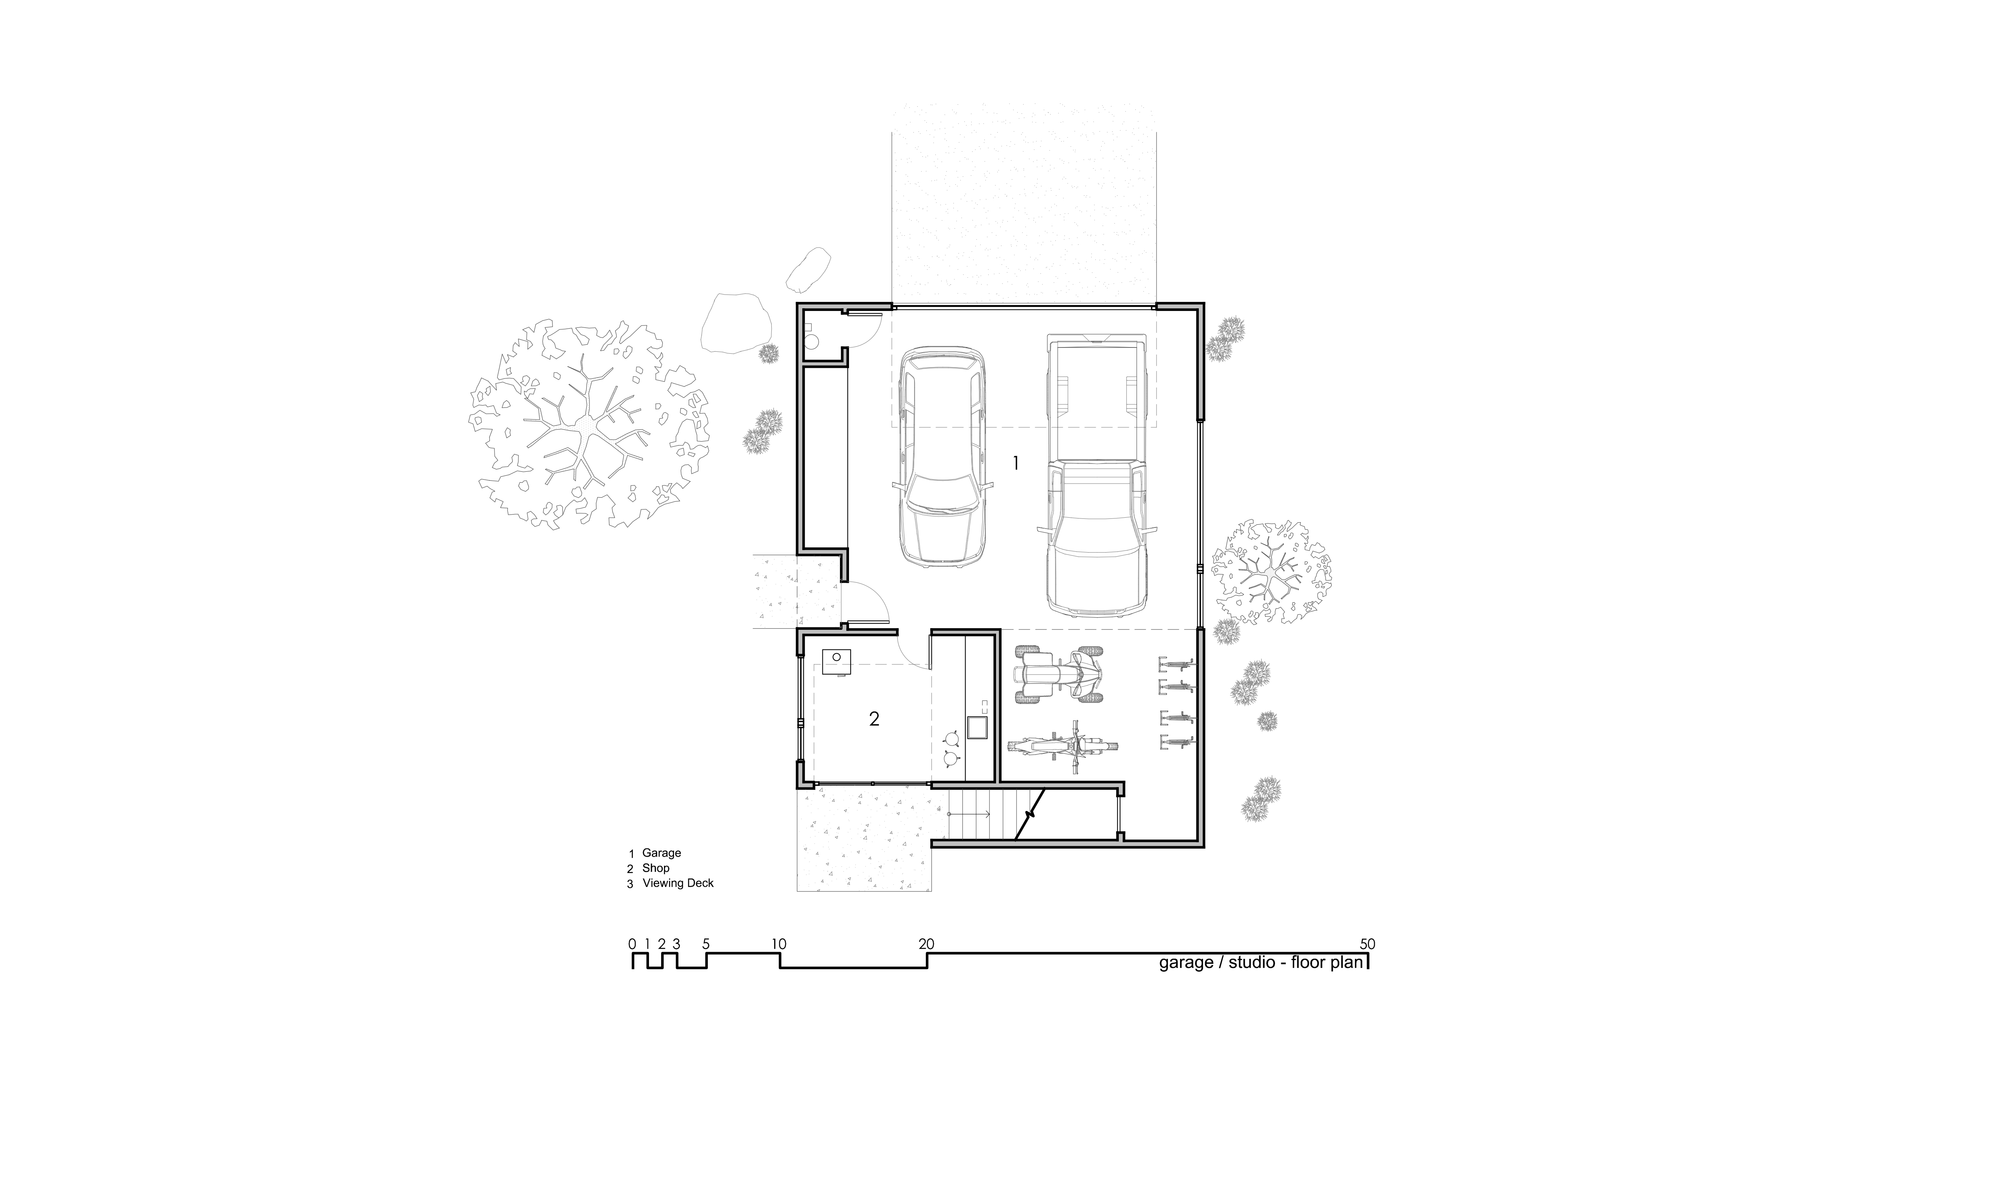 5522fdefe58ecea119000072_capitol-reef-desert-dwelling-imbue-design_35_garage_studio_-_floor_plan